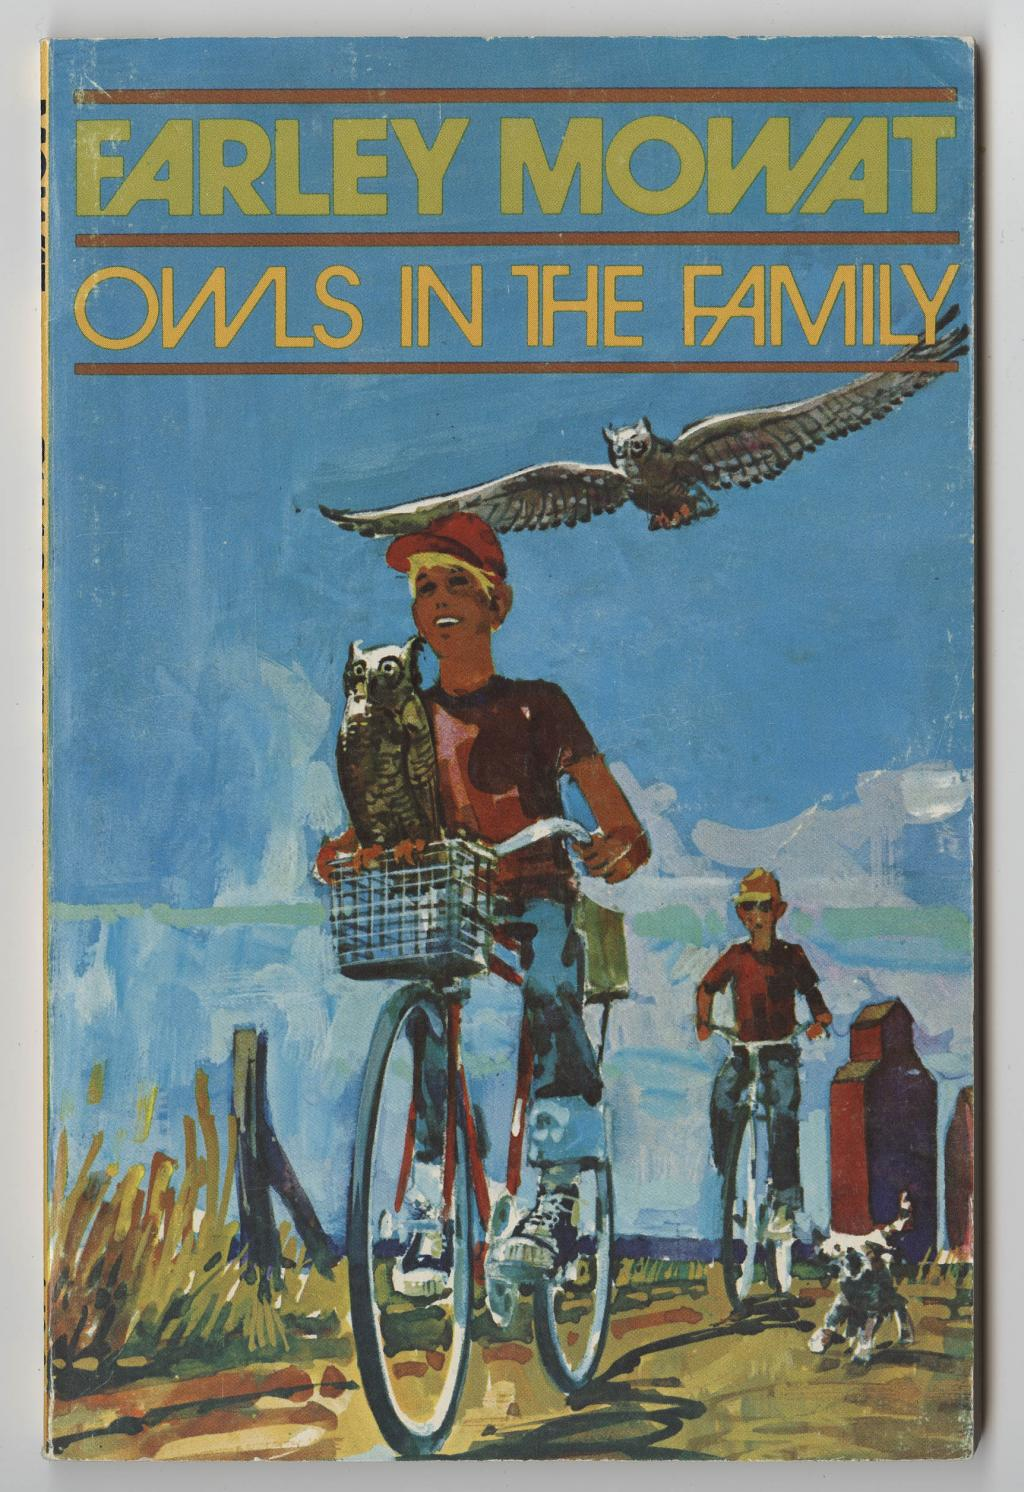 Old Favorite Owls In The Family